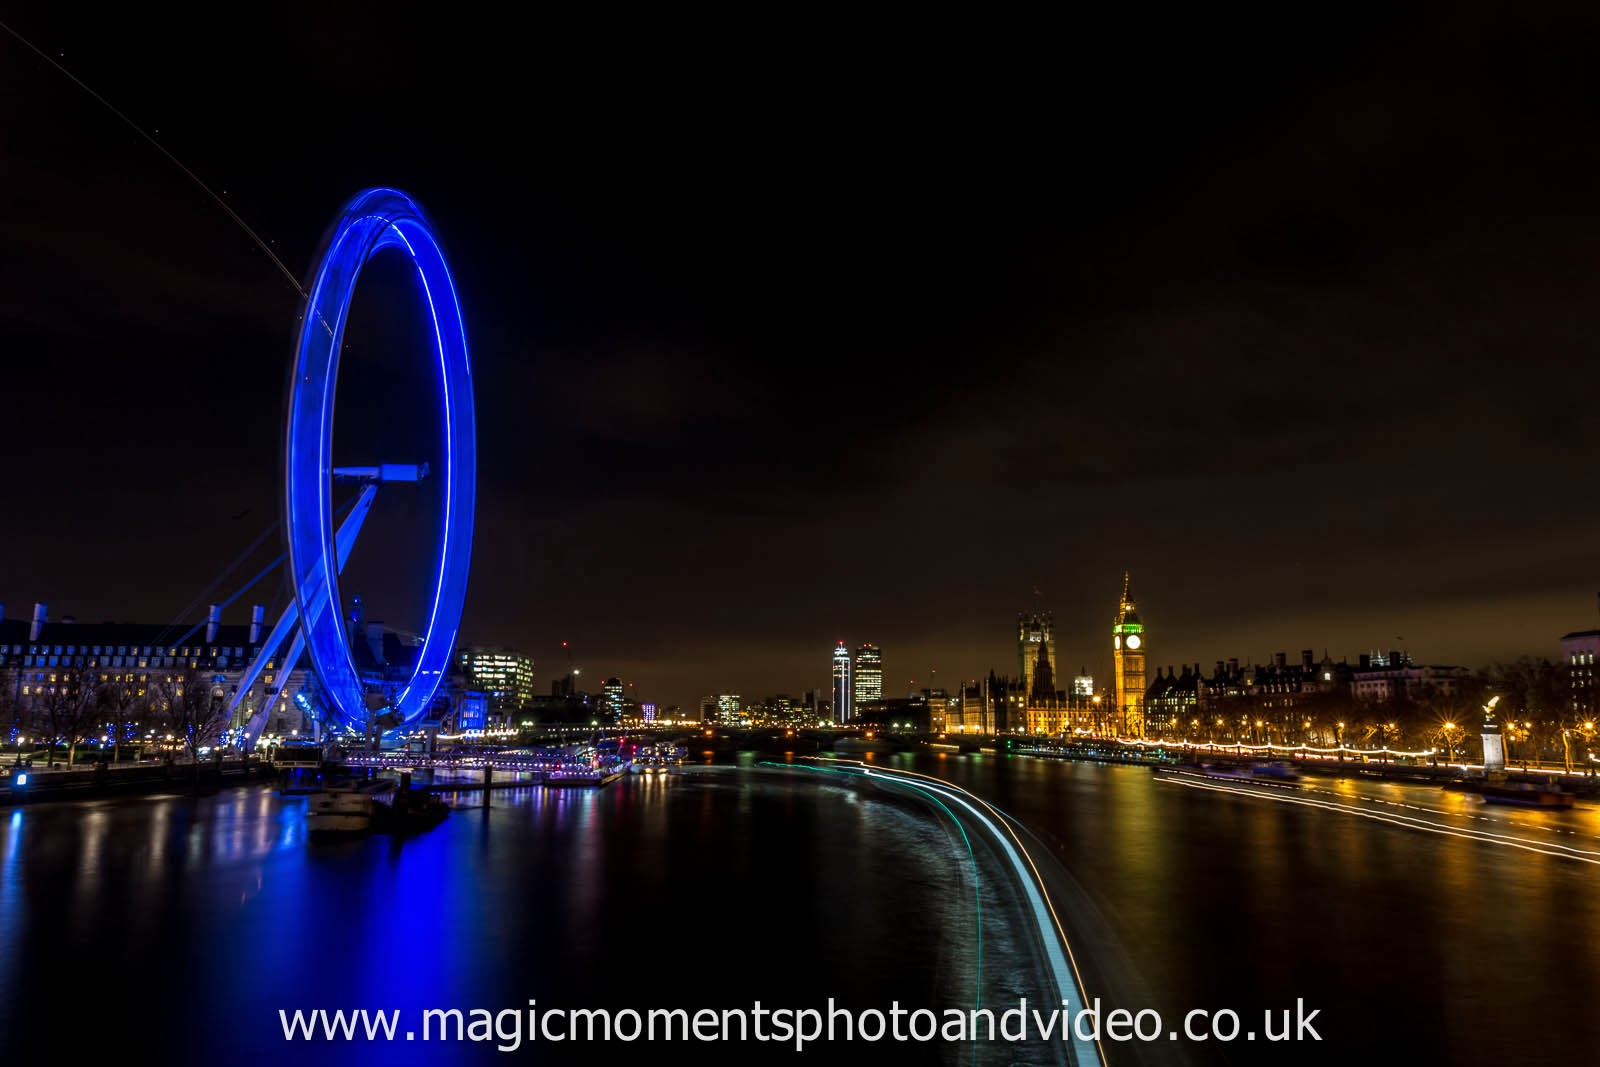 The River Thames and the London Eye